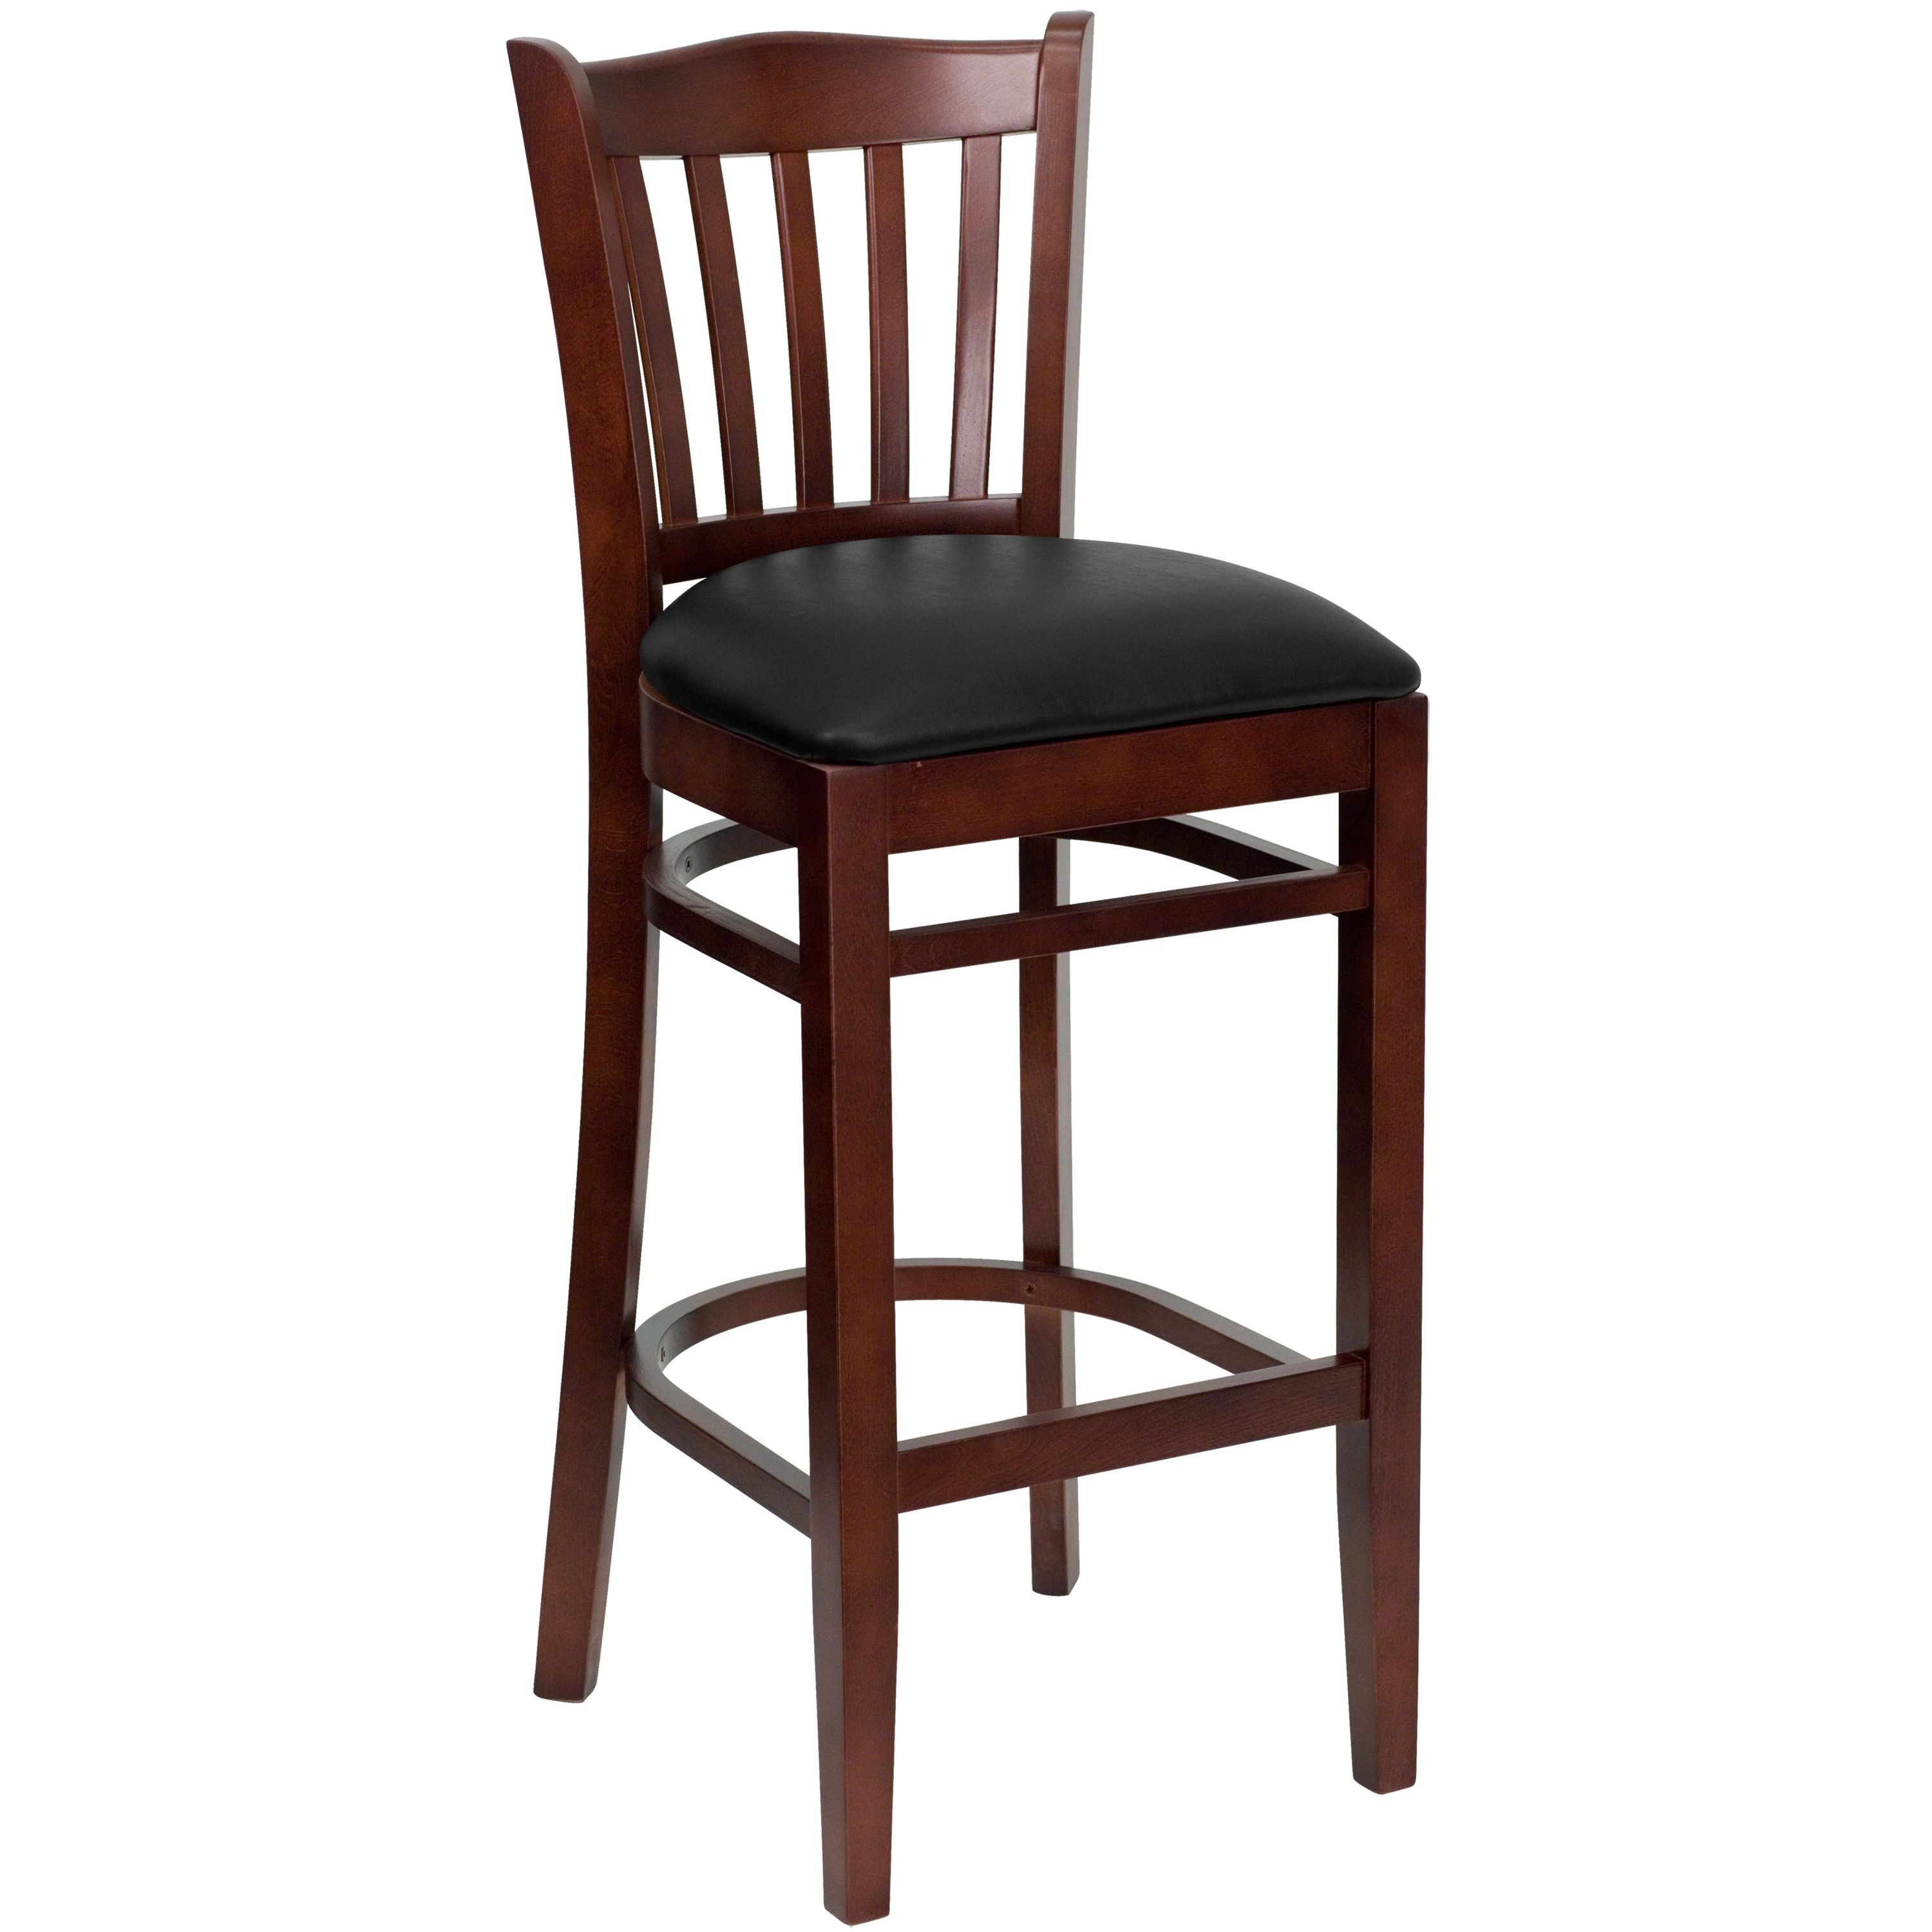 Flash Furniture XU-DGW0008BARVRT-MAH-BLKV-GG Vertical Slat Back Mahogany Wood Bar Stool with Black Vinyl Seat